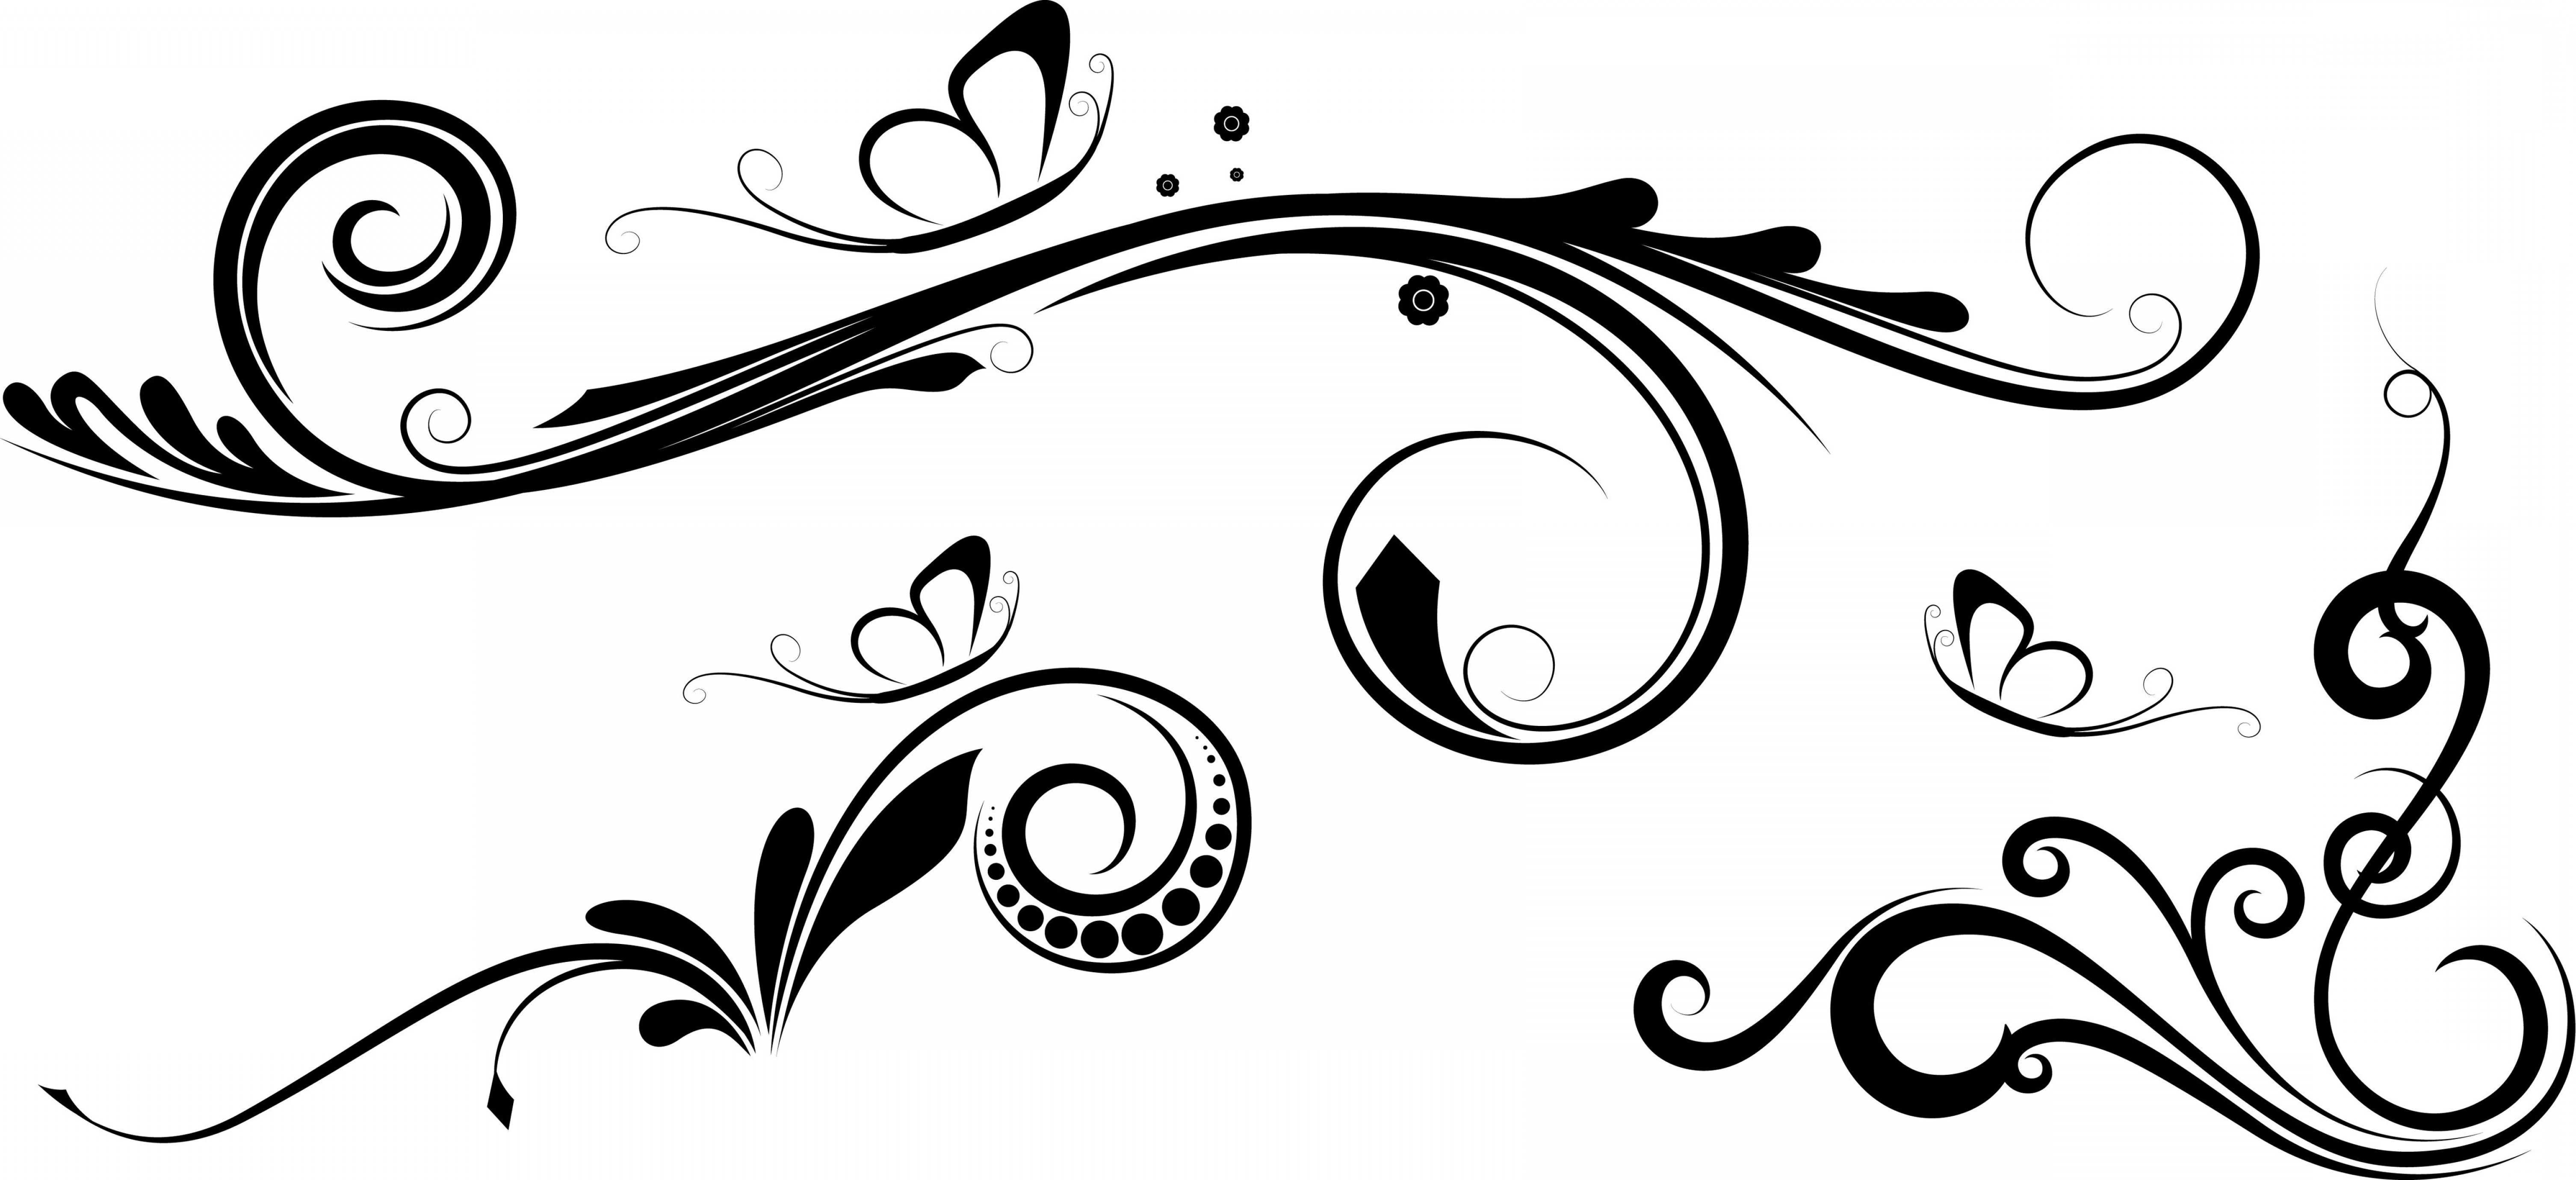 Vintage Vectors For Photoshop: Best Photoshop Swirl Brushes Vector Drawing